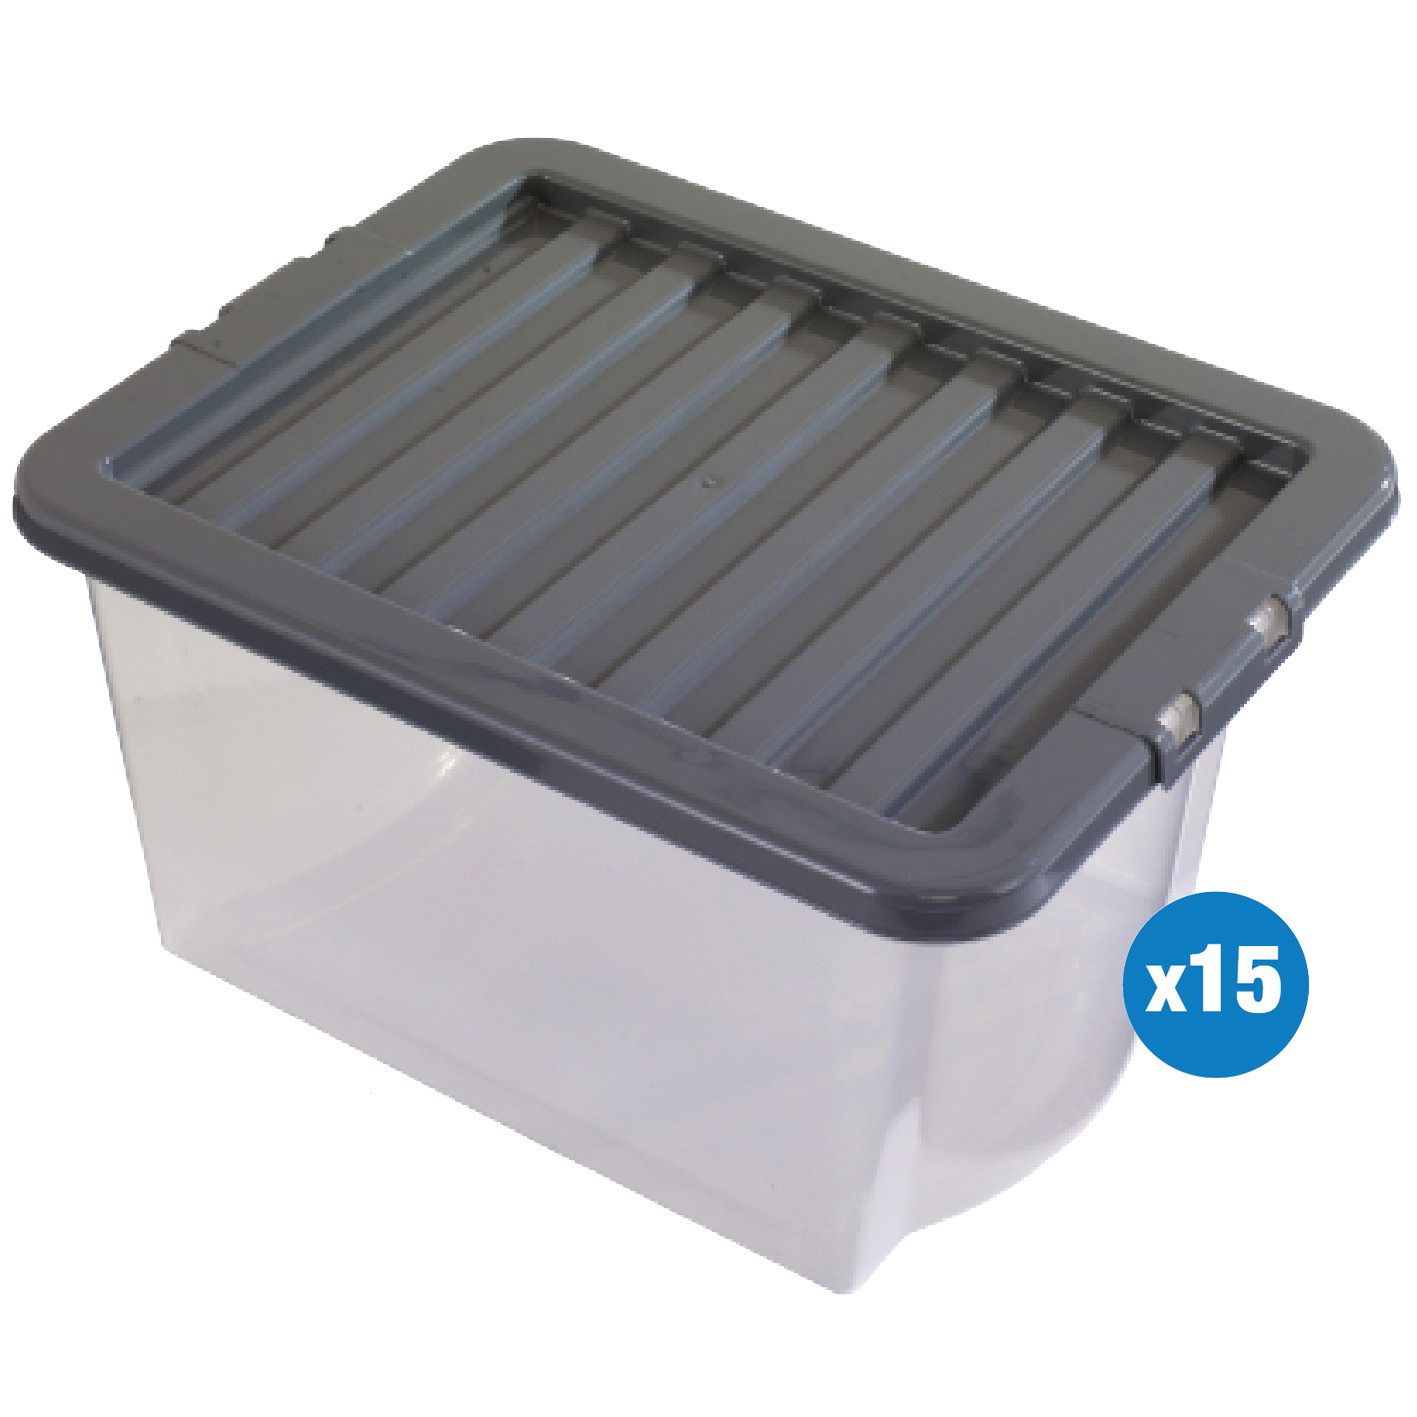 no reserve 15 x clear 30 litre plastic box with lid boxes storage container wham ebay. Black Bedroom Furniture Sets. Home Design Ideas